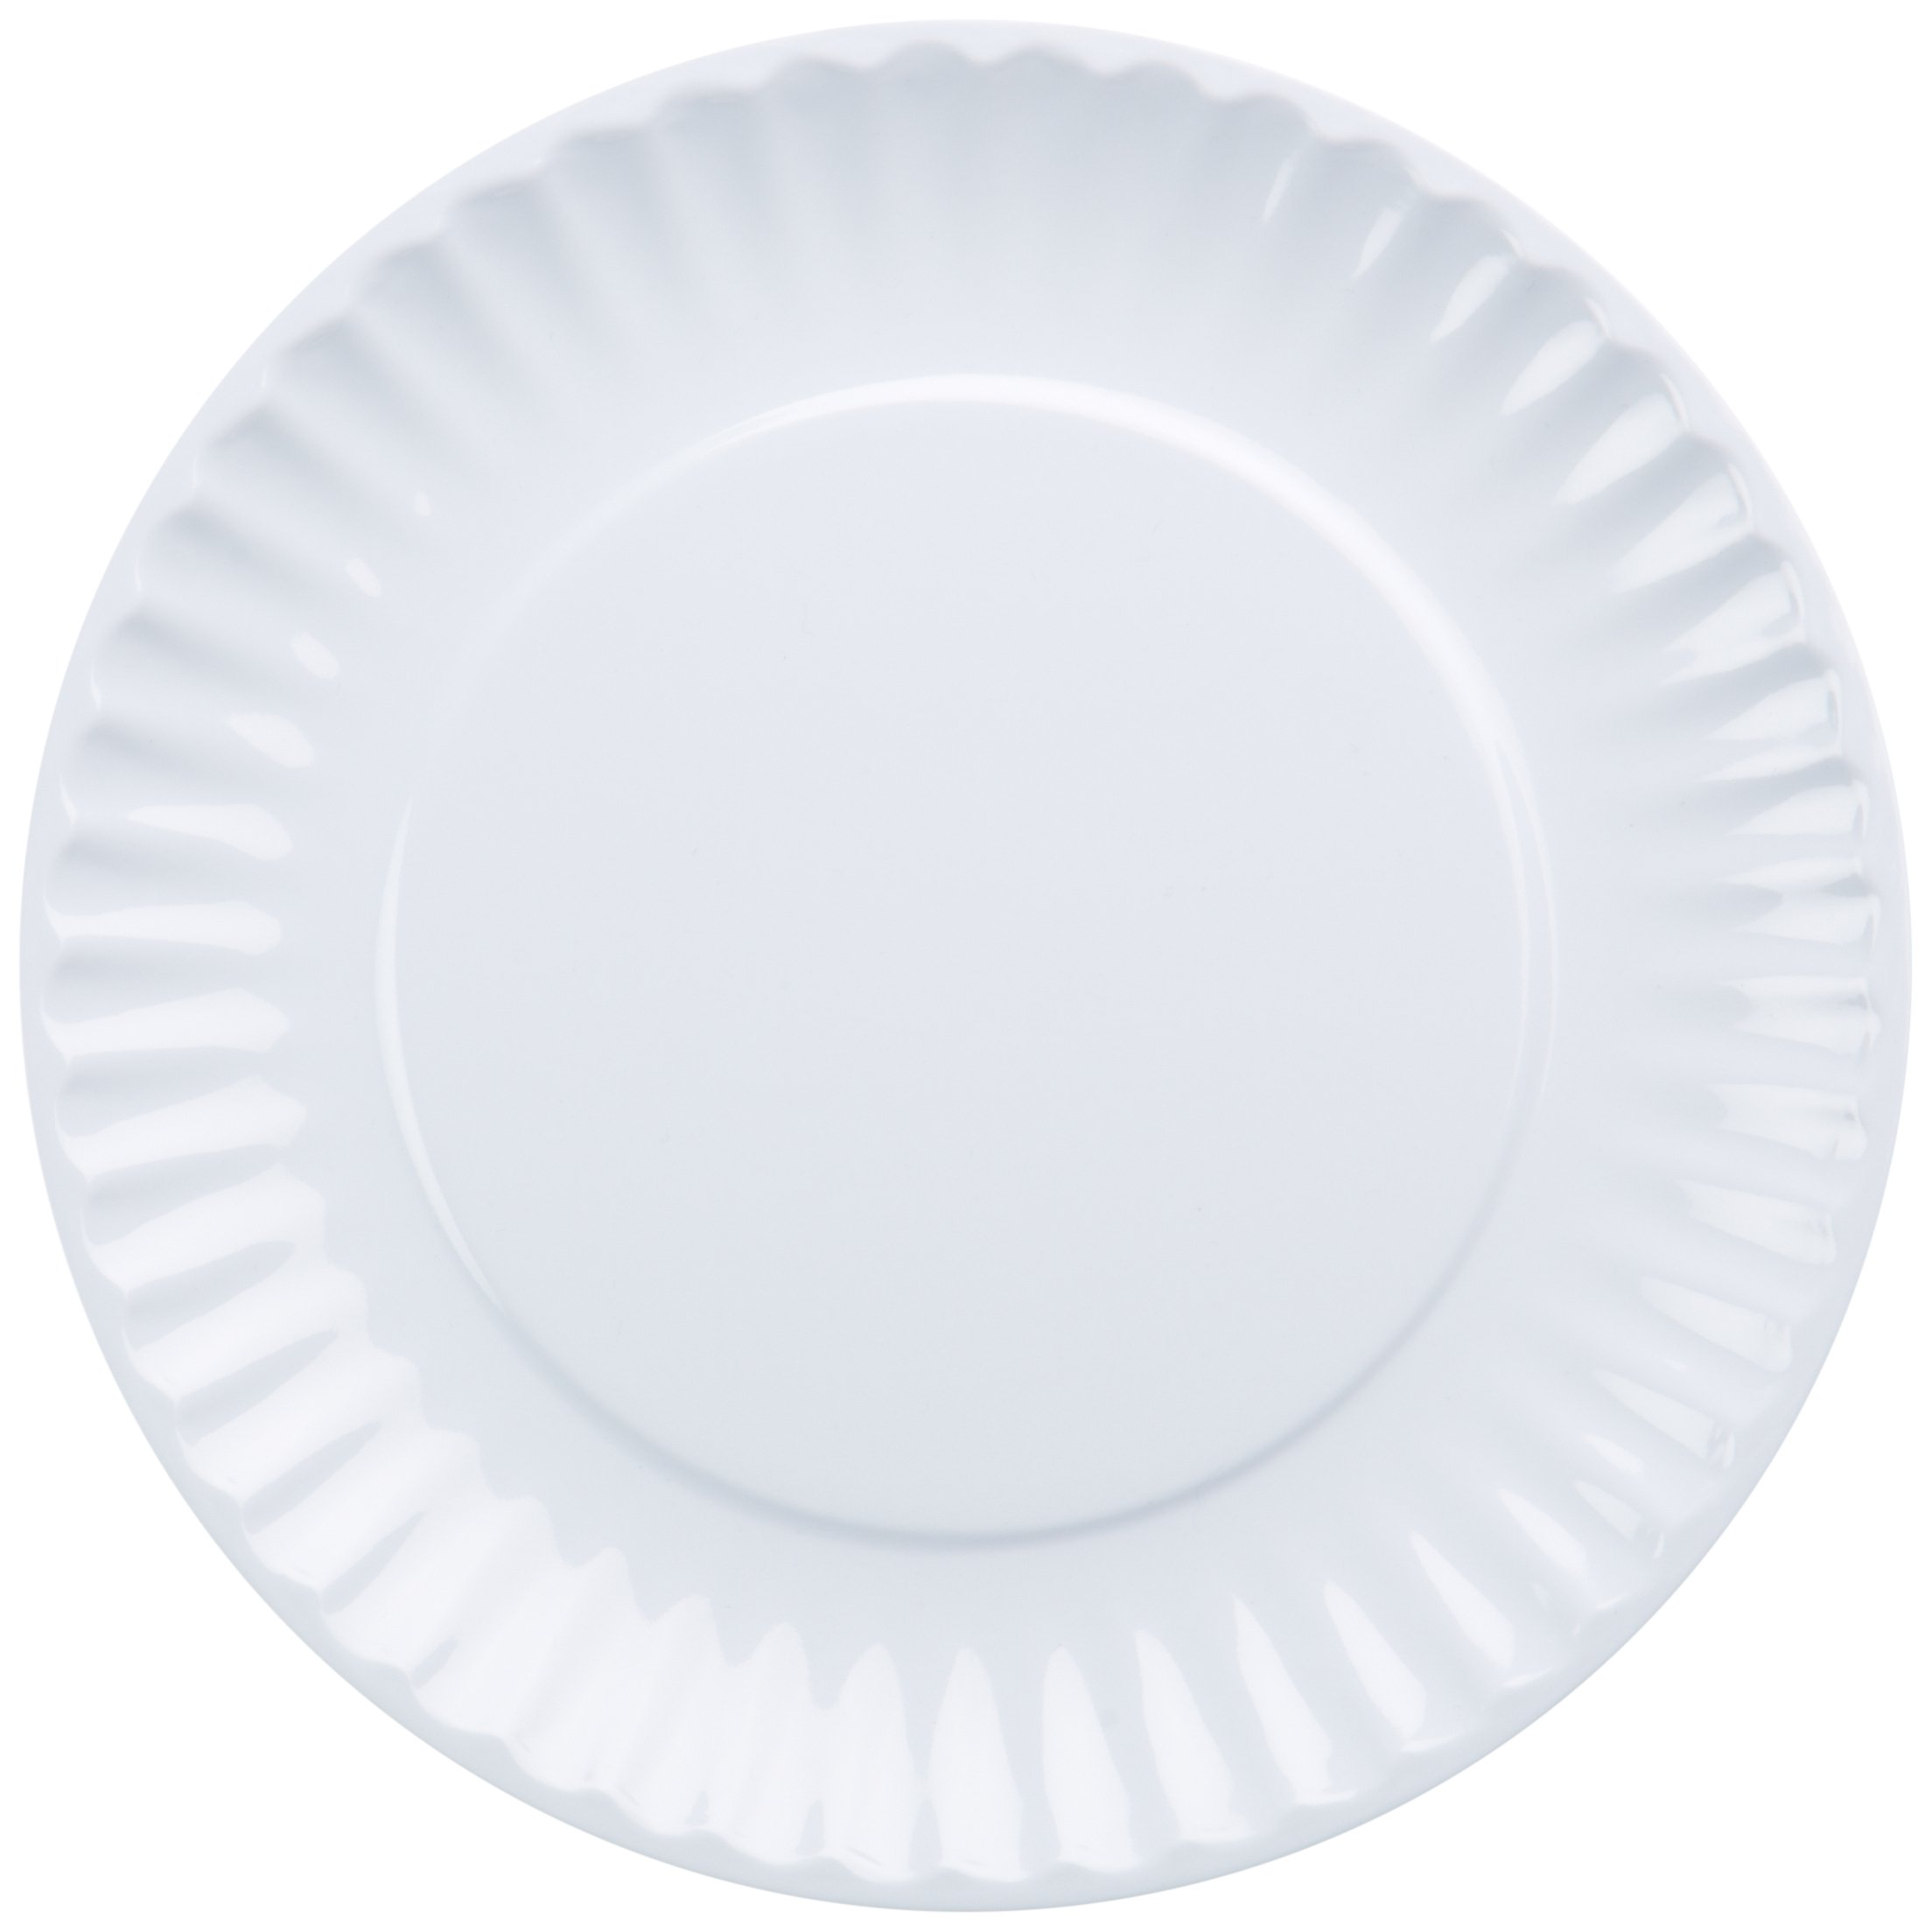 DII Melamine Reusable Party or Picnic Plate, White, Set of 12